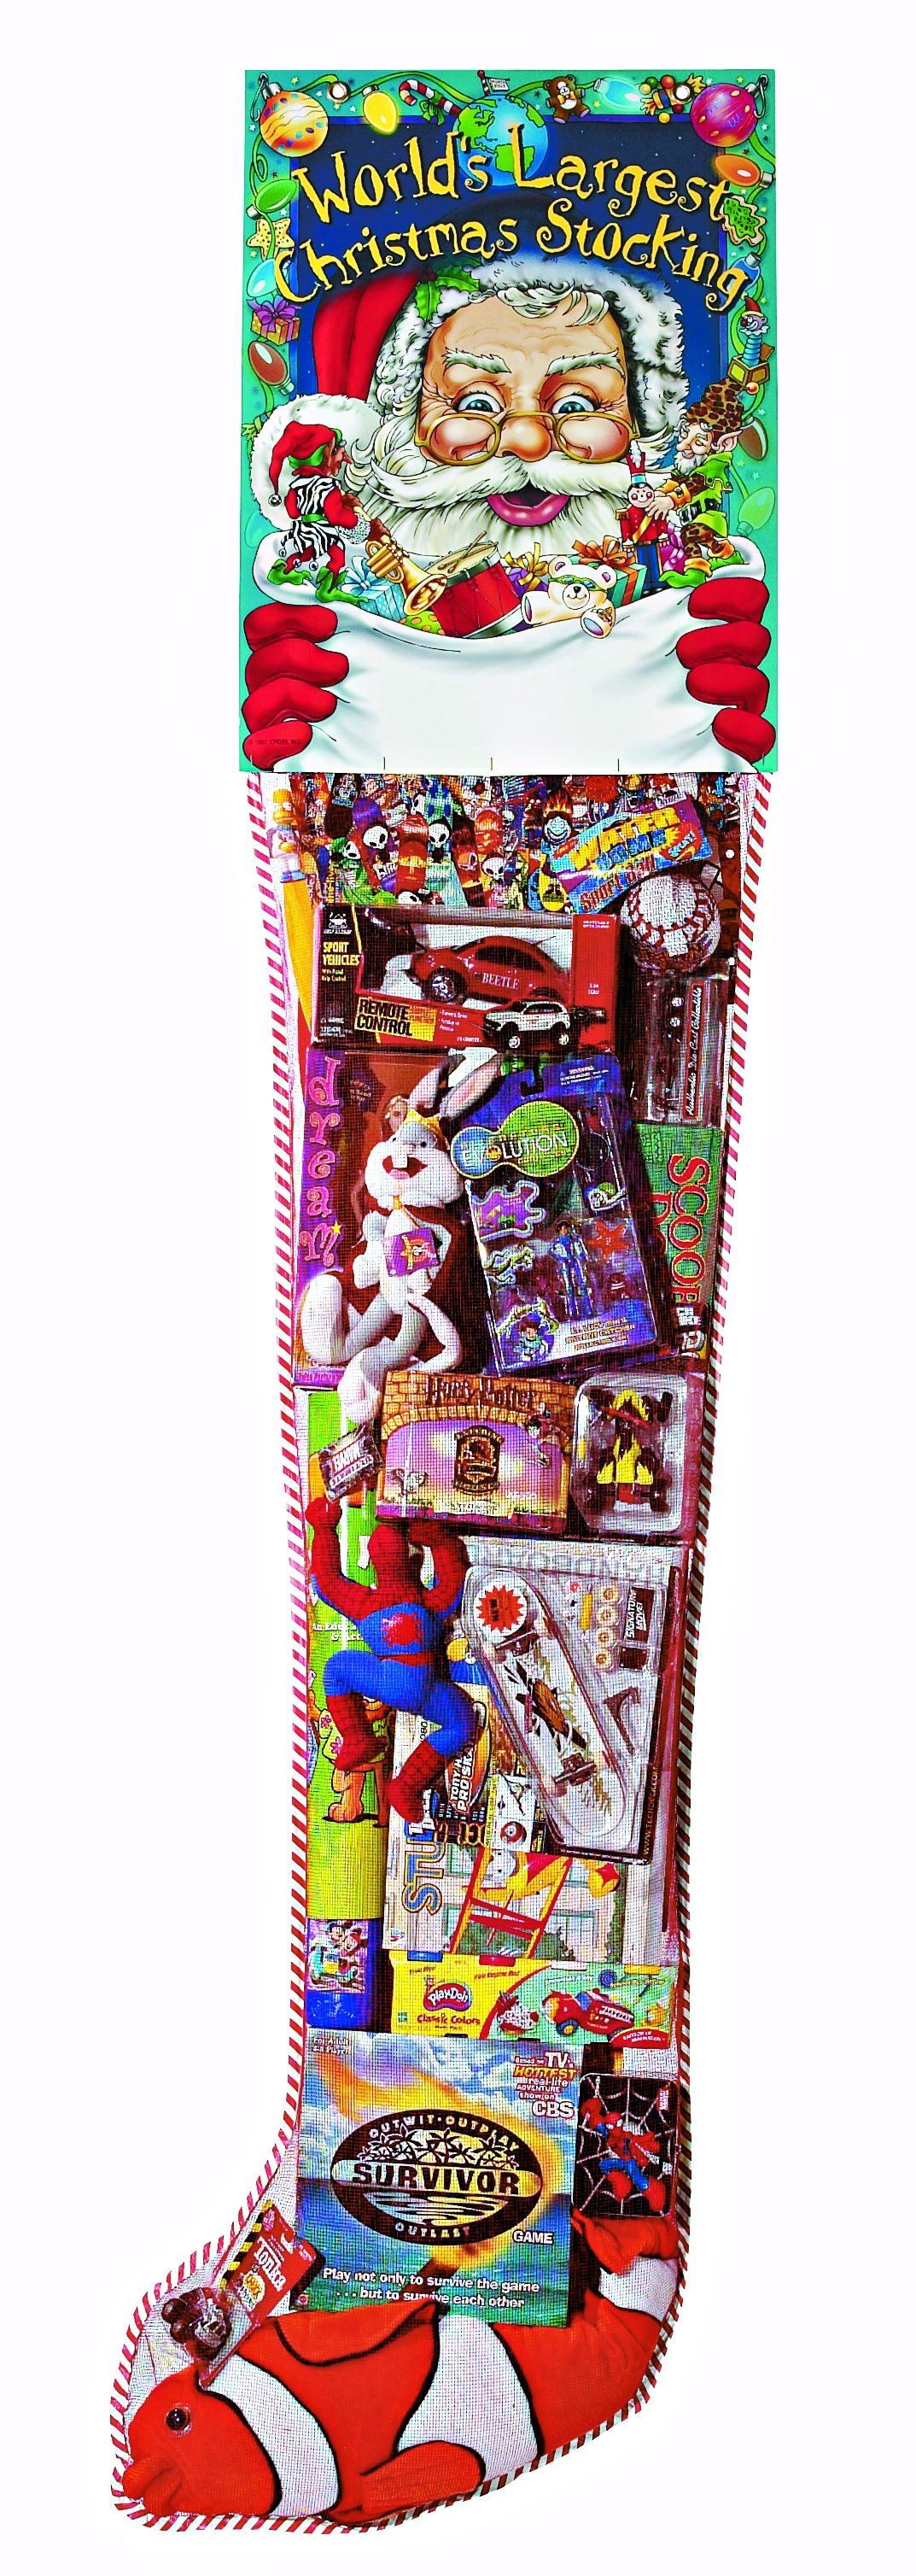 Candy Filled Christmas Stockings Wholesale  GIANT TOY FILLED STOCKINGS 6 Foot Stockings